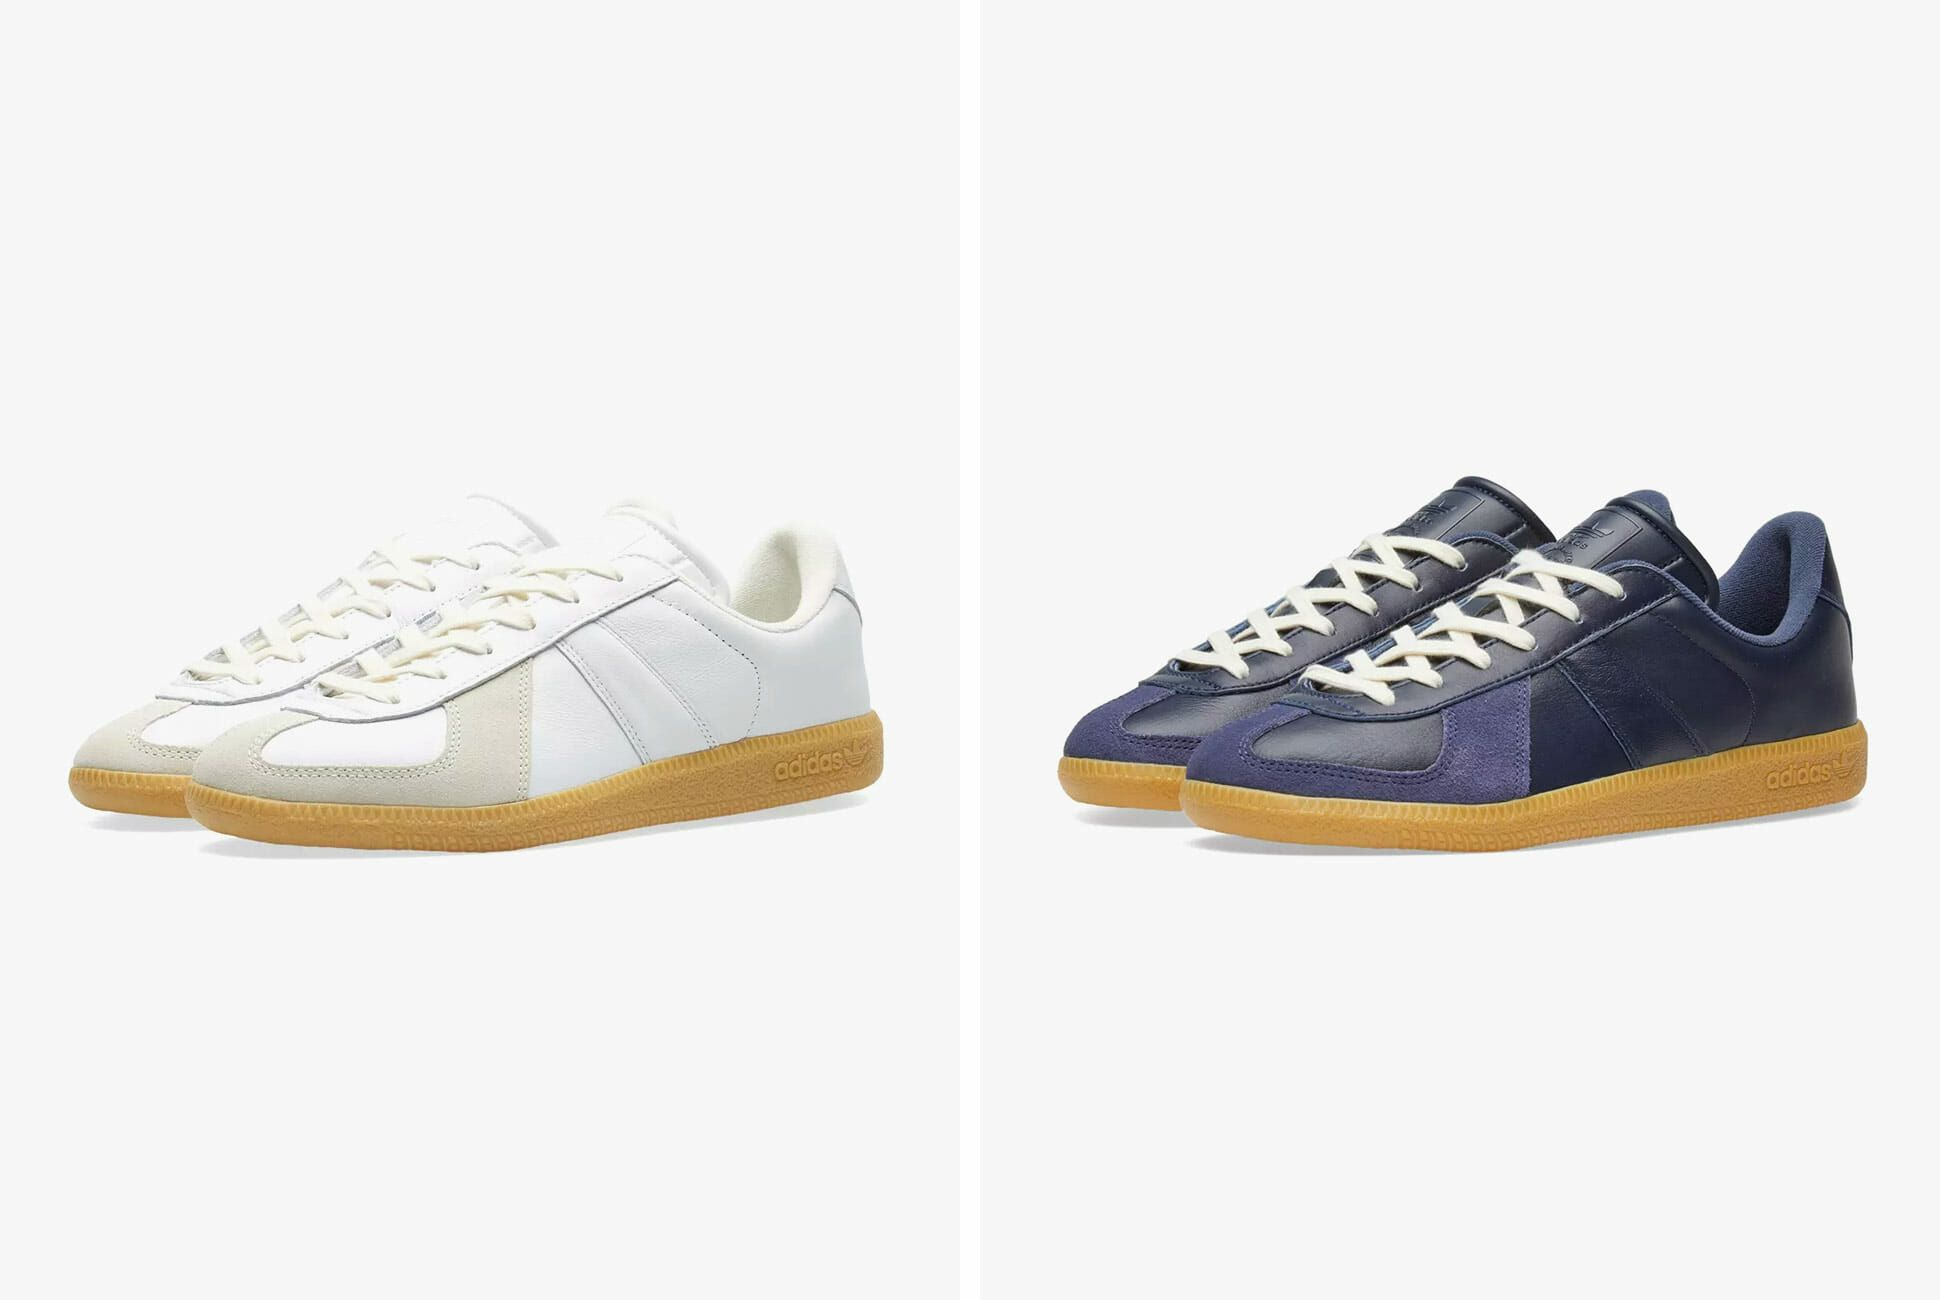 These Vintage-Inspired Trainers from Adidas